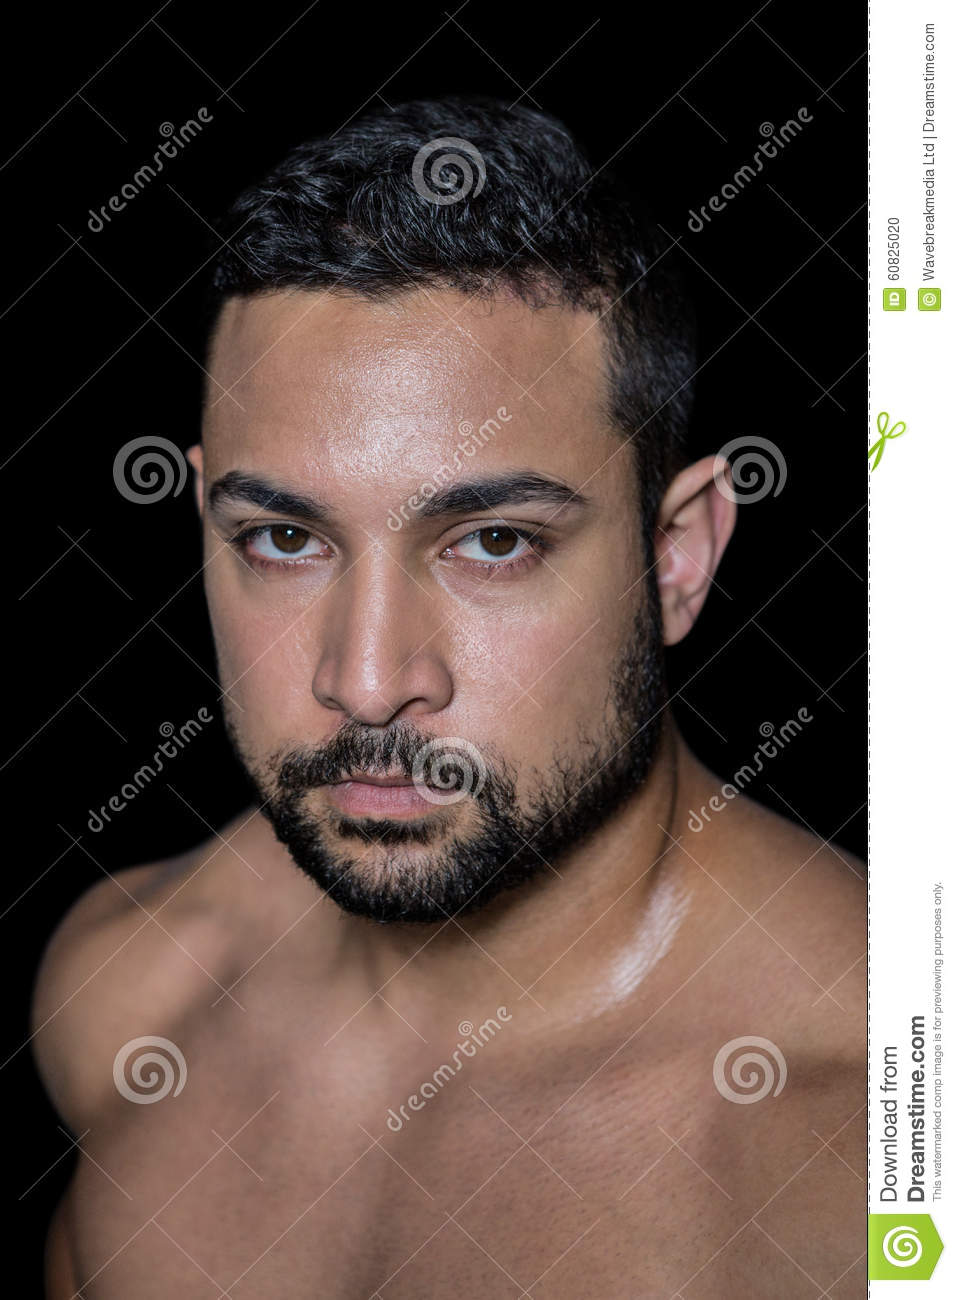 Portrait of a muscular man